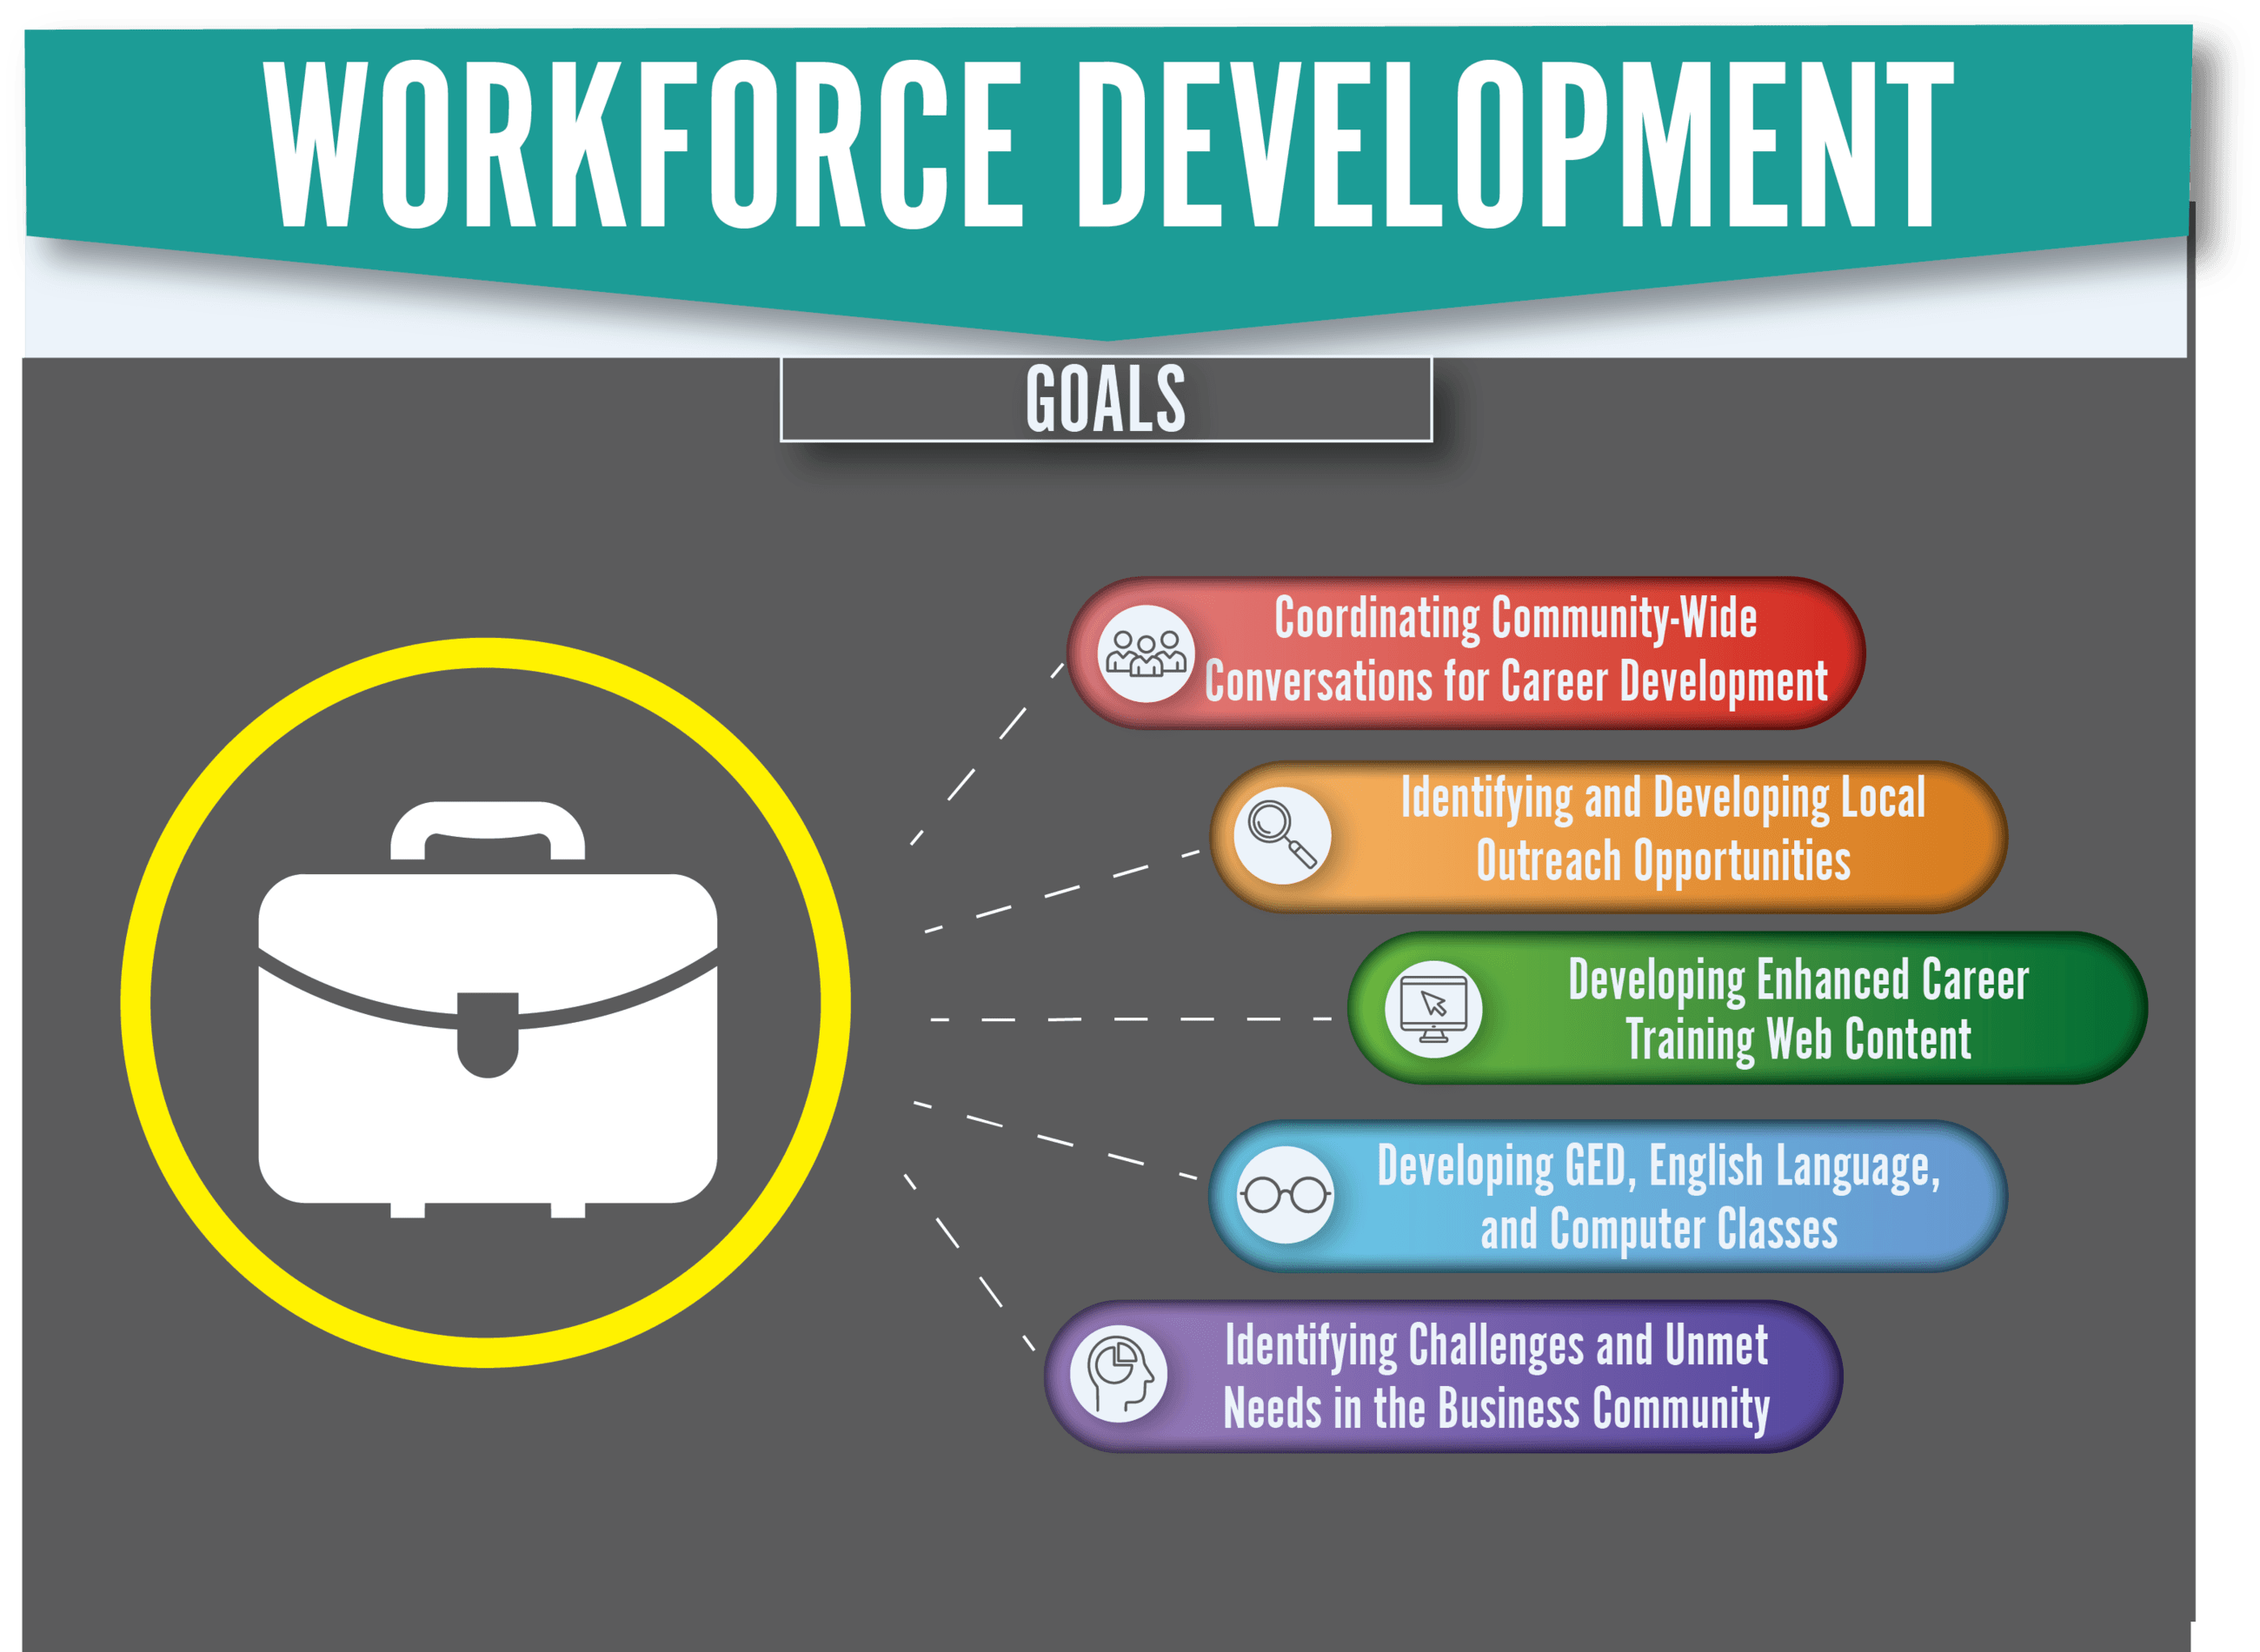 The Workforce Development Dashboard showing goals for the upcoming years